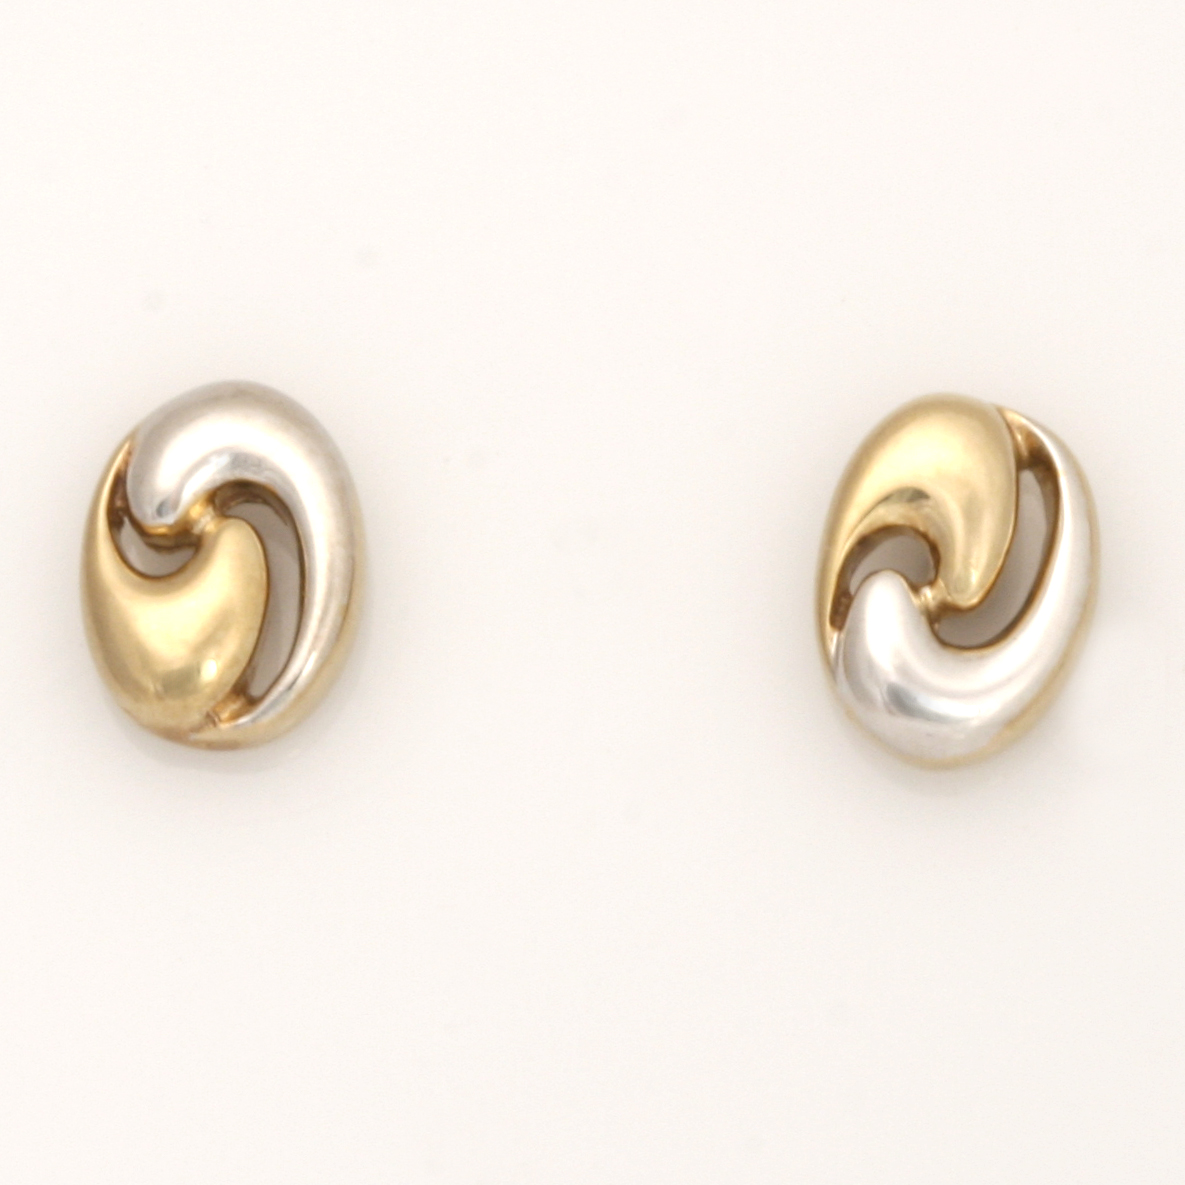 E0159 – 9ct yellow gold and rhodium plate two toned stud earrings $280